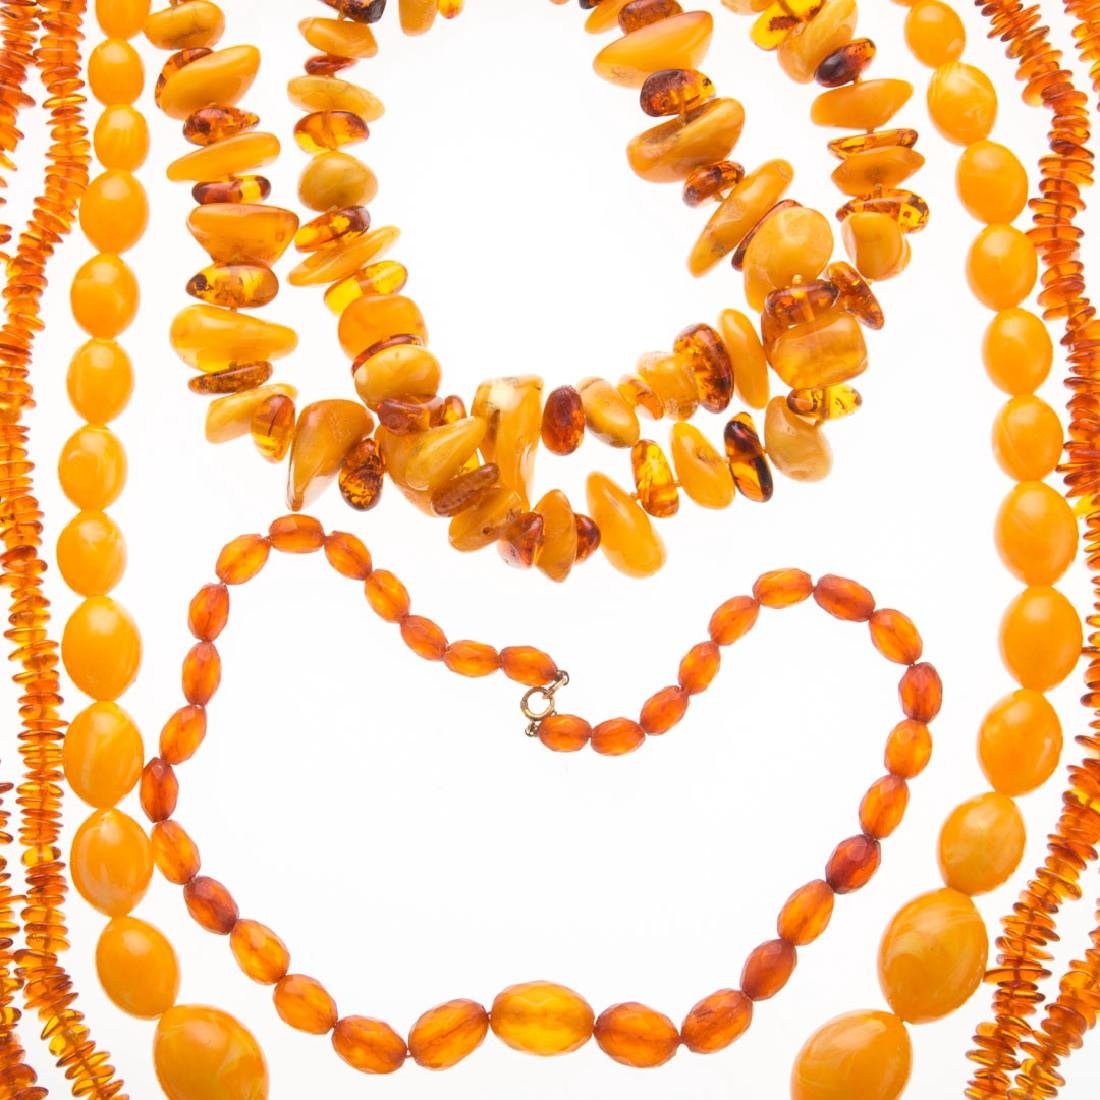 Five Lady's Amber Necklaces - 2